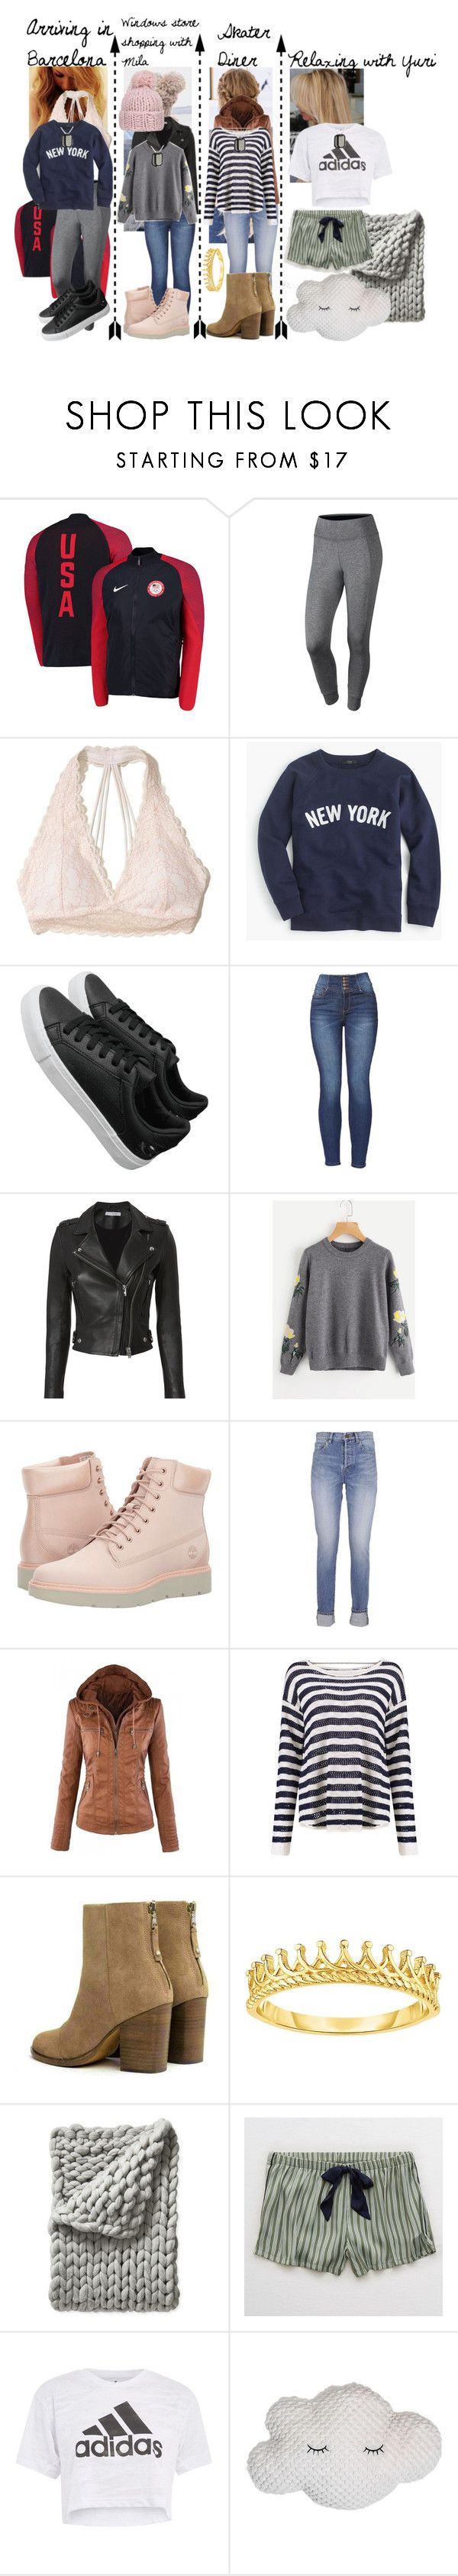 """""""Gotta Supercharge it! Pre-Grand Prix Final Special"""" by frootloop16 ❤ liked on Polyvore featuring NIKE, Hollister Co., J.Crew, IRO, Timberland, Yves Saint Laurent, rag & bone, Serena & Lily, Aerie and adidas"""